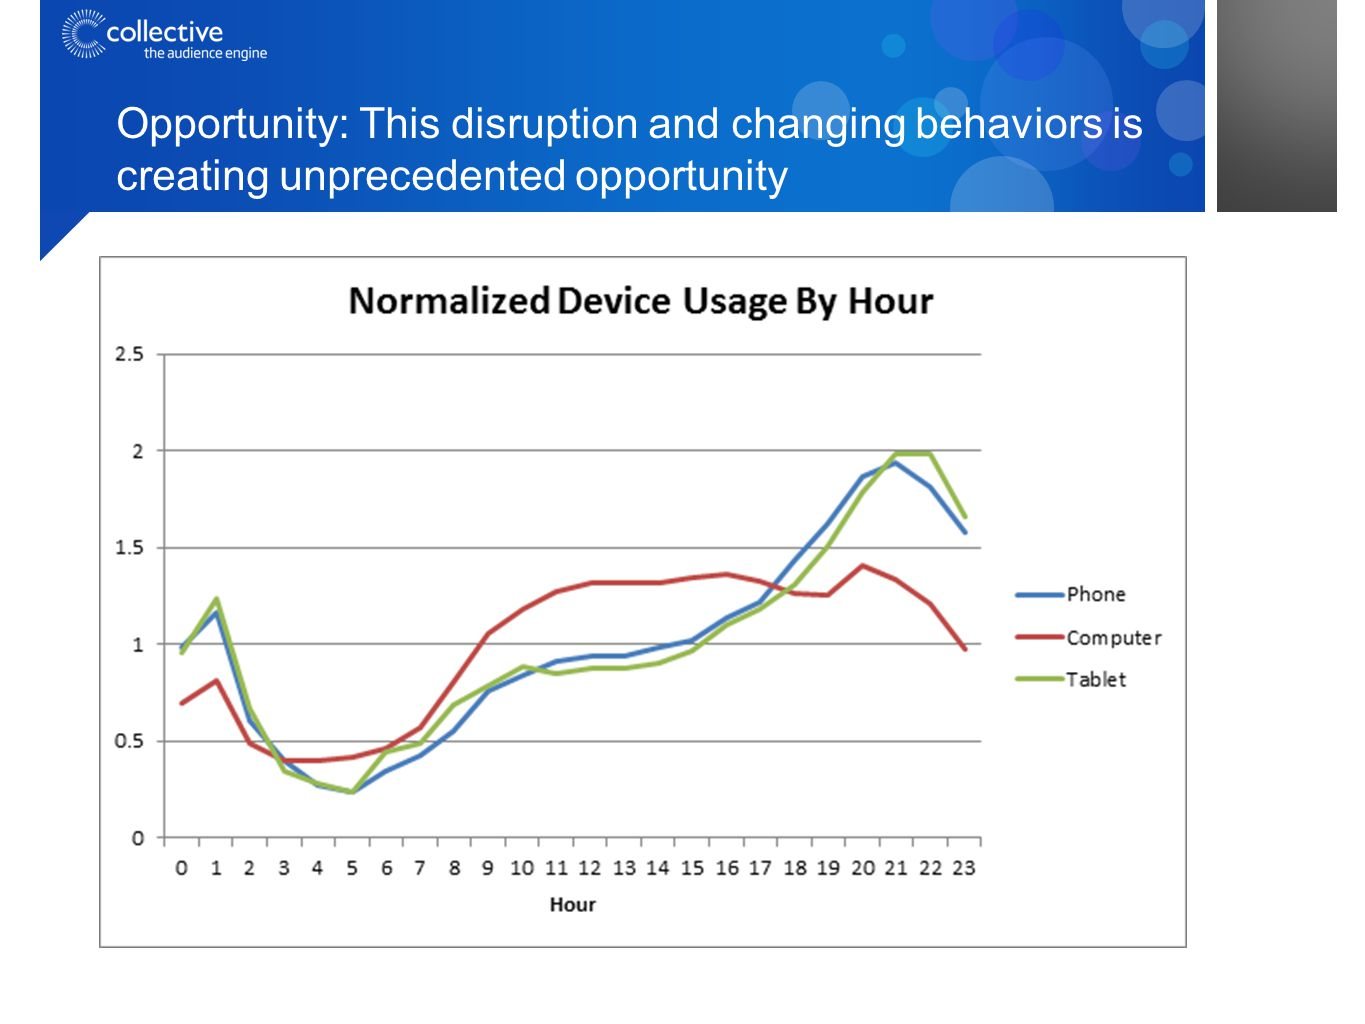 Opportunity: This disruption and changing behaviors is creating unprecedented opportunity